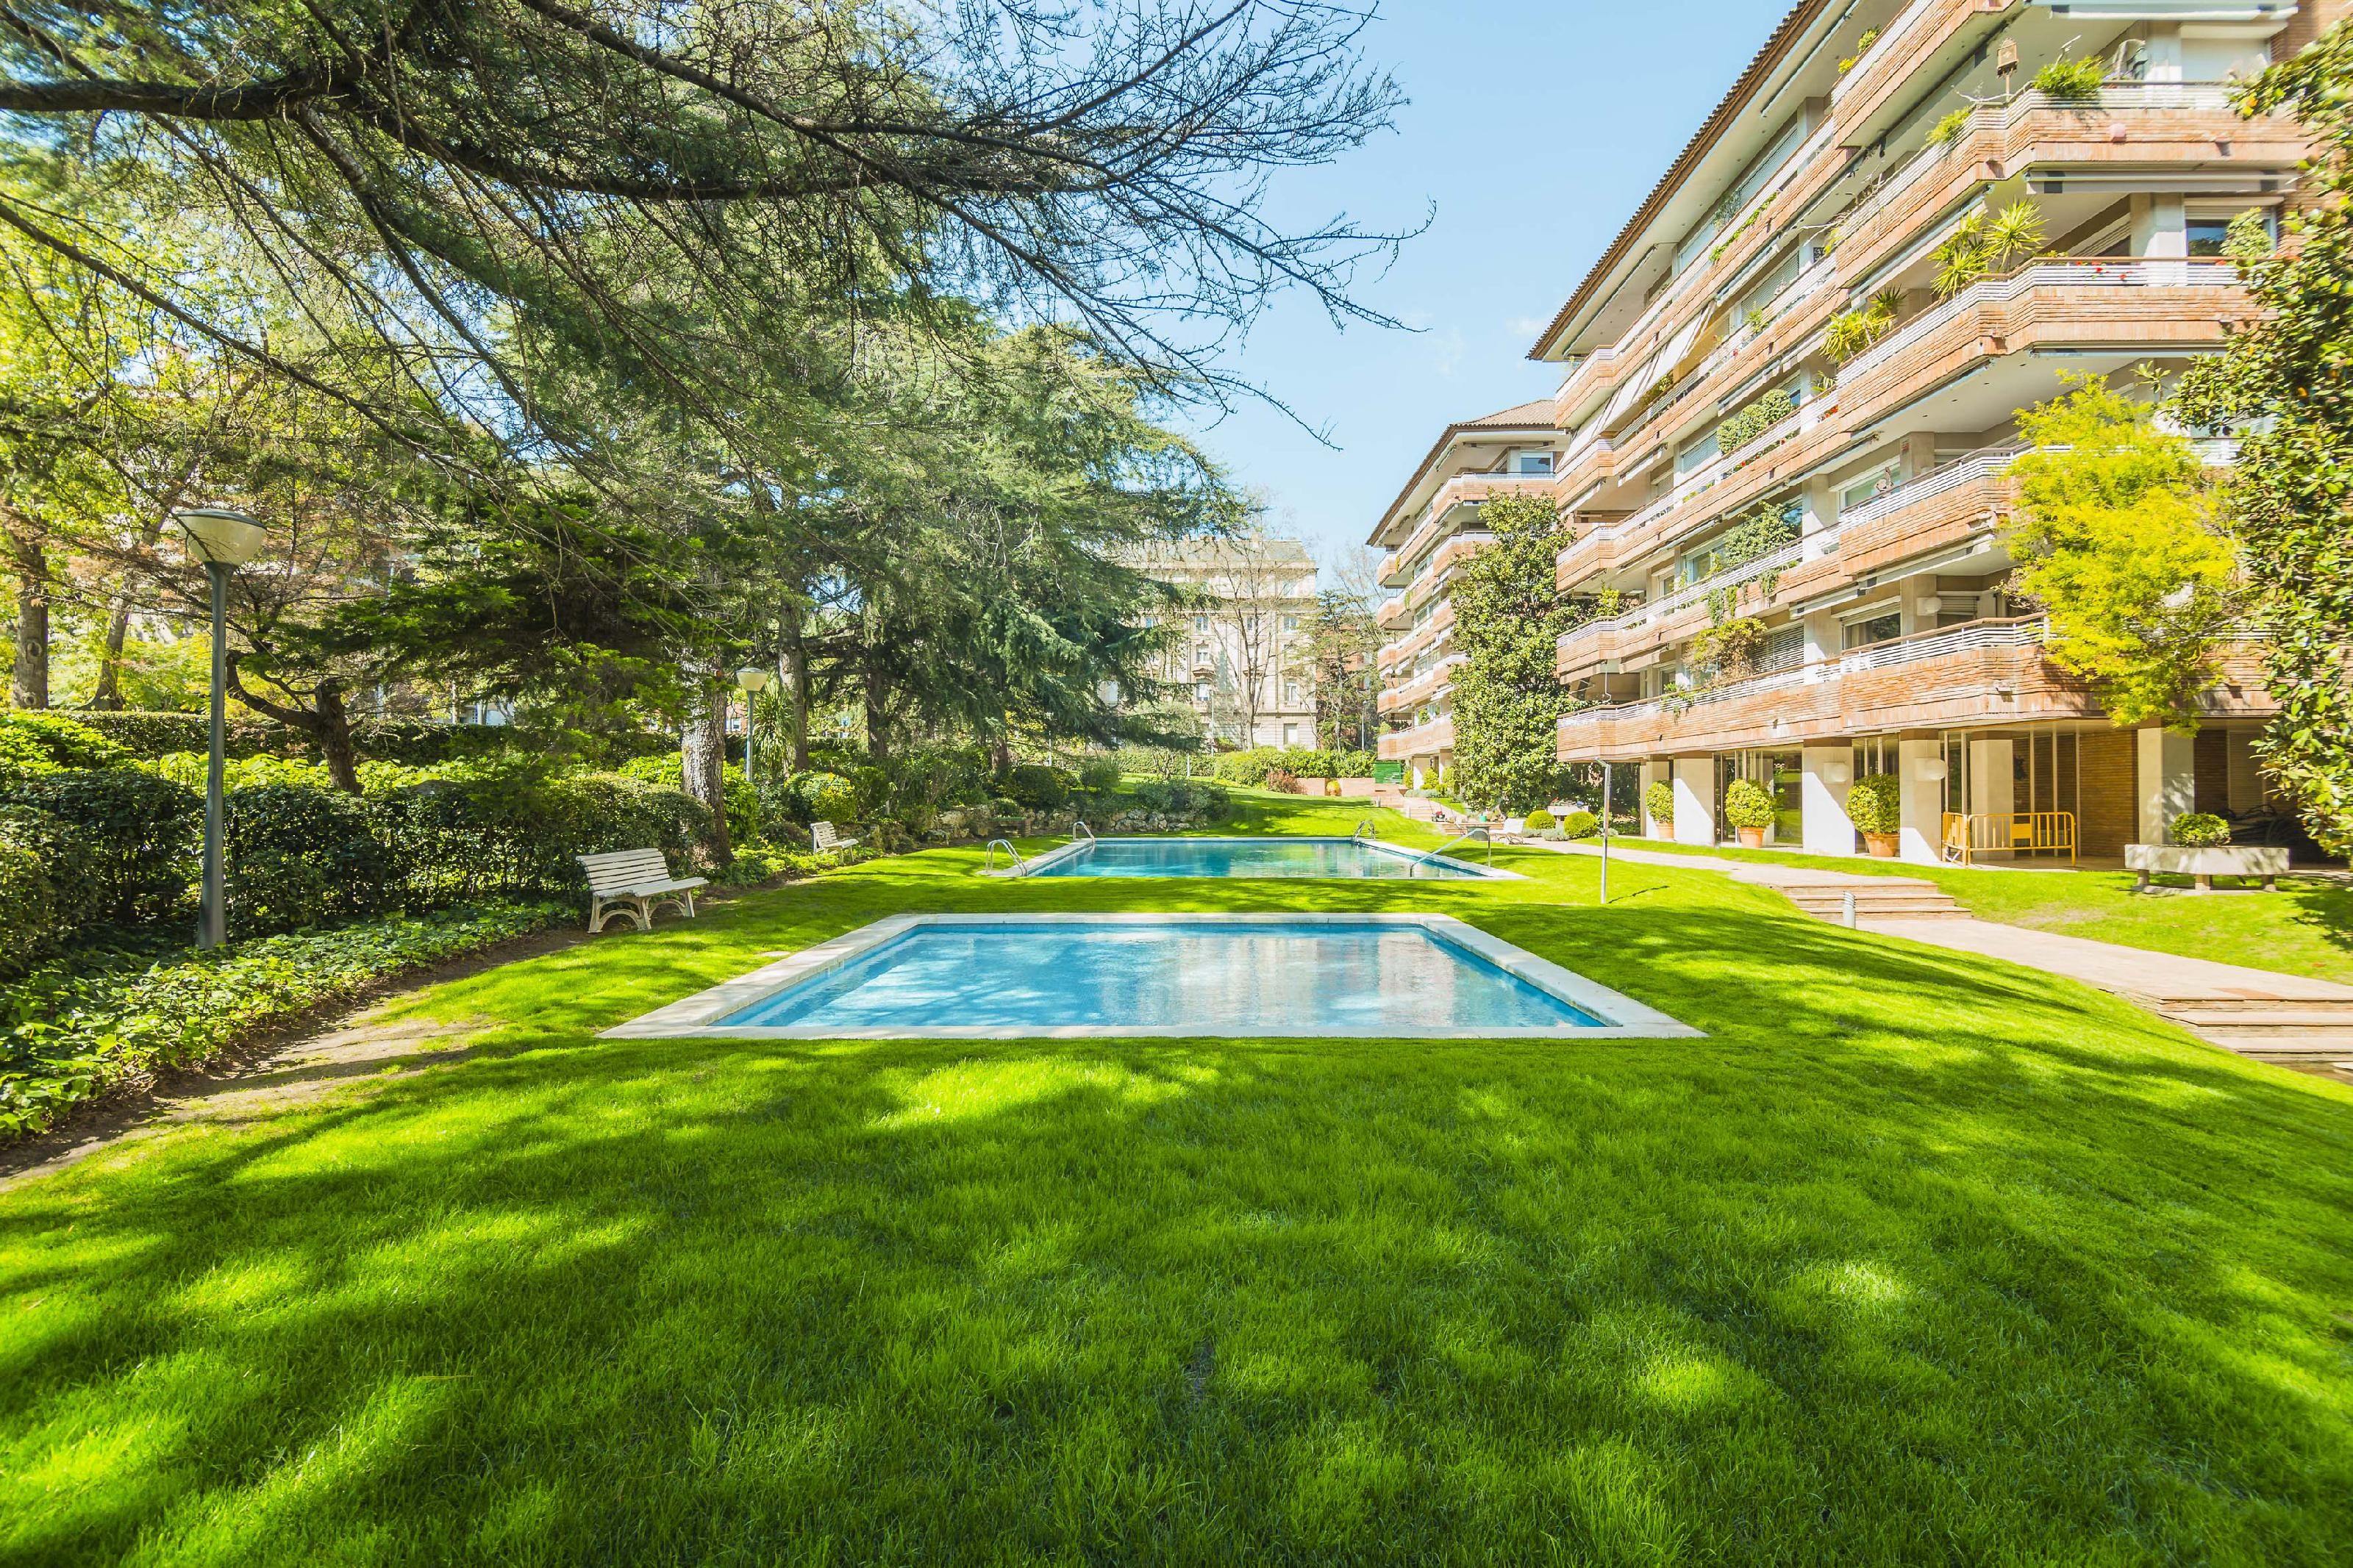 247560 Flat for sale in Les Corts, Pedralbes 1